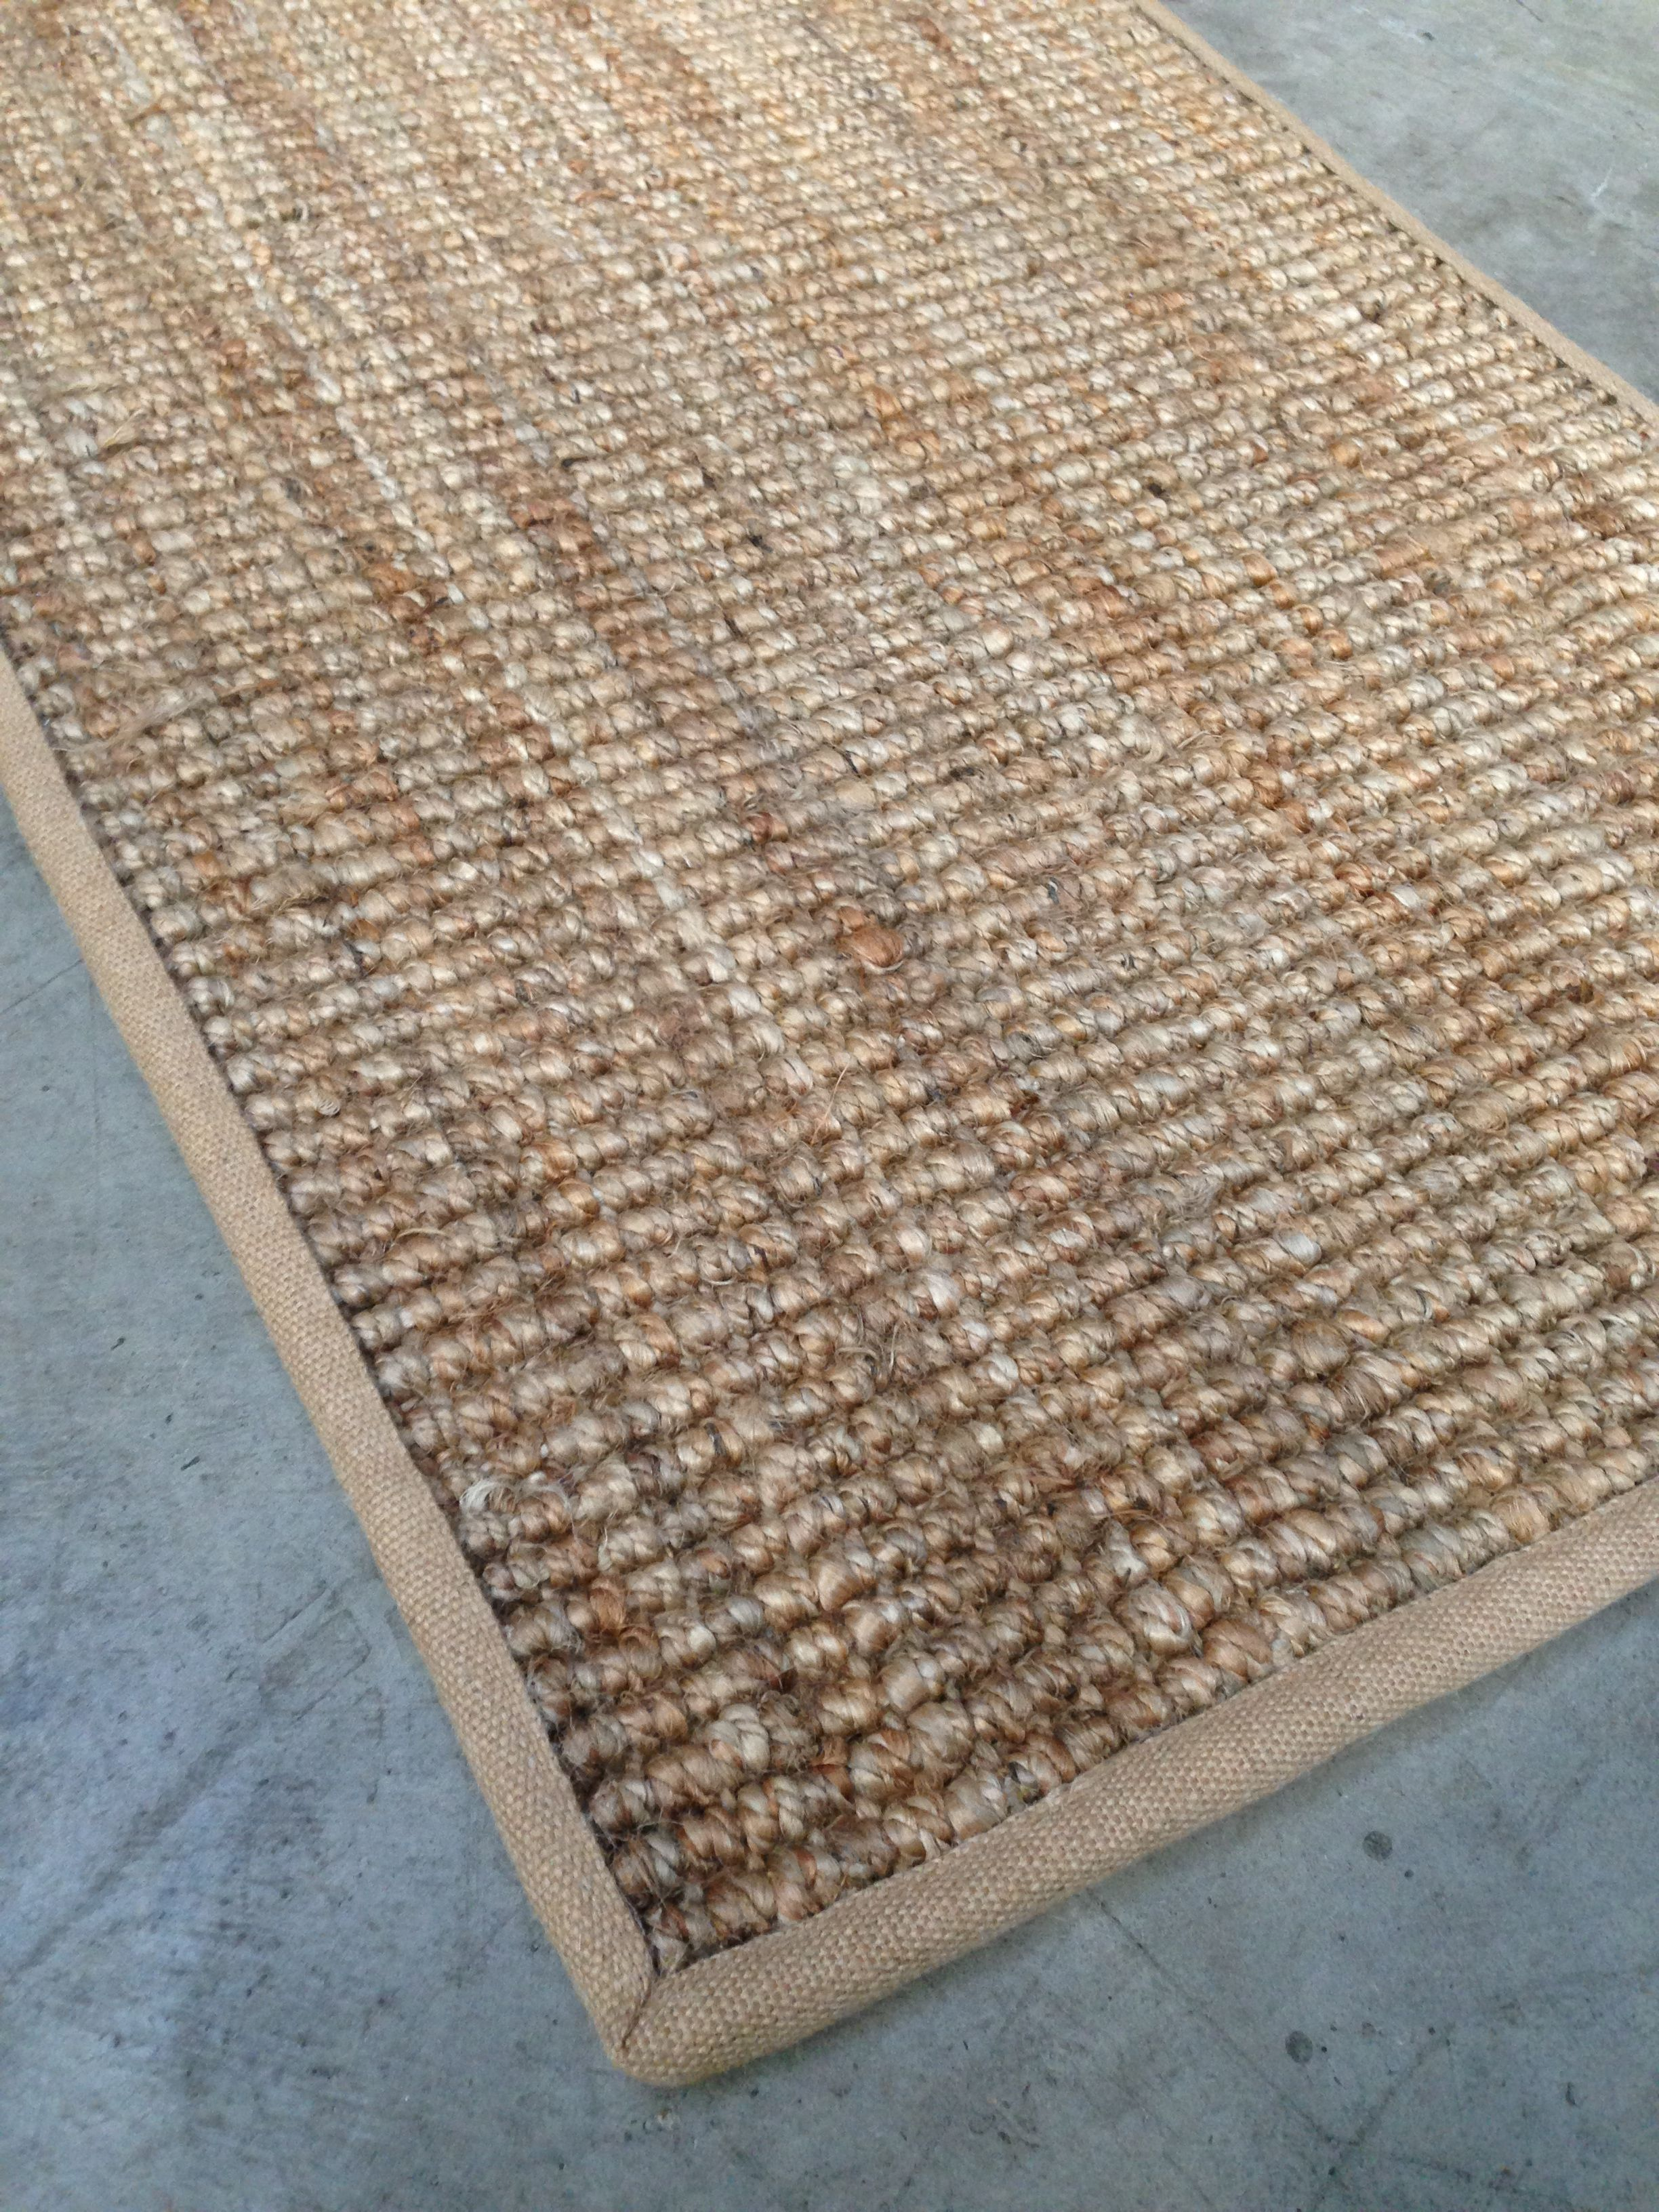 Natural Jute Rug With Hessian Border